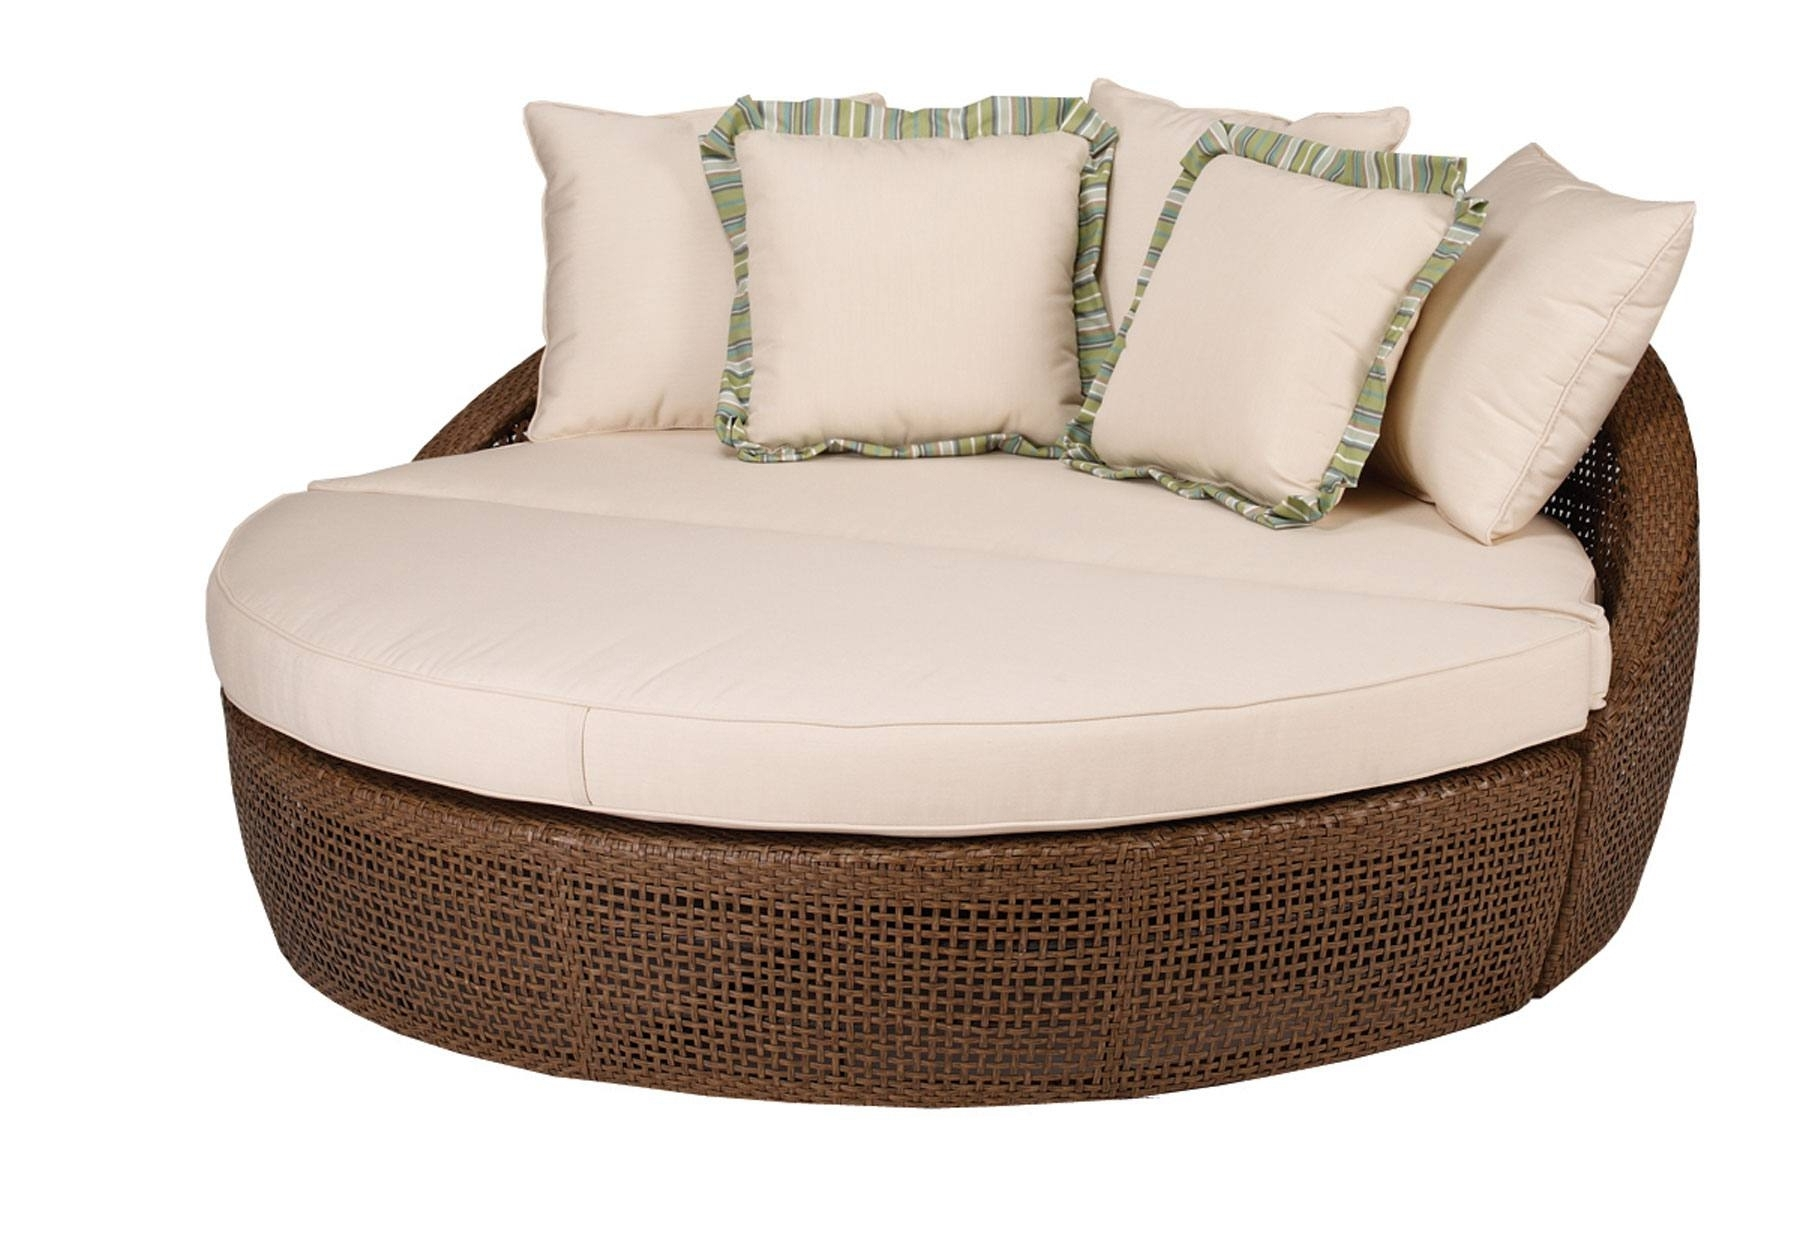 Favorite Interior: Alluring Furniture Chaise Lounge Indoor For Living Room In Cheap Chaise Lounge Chairs (View 7 of 15)